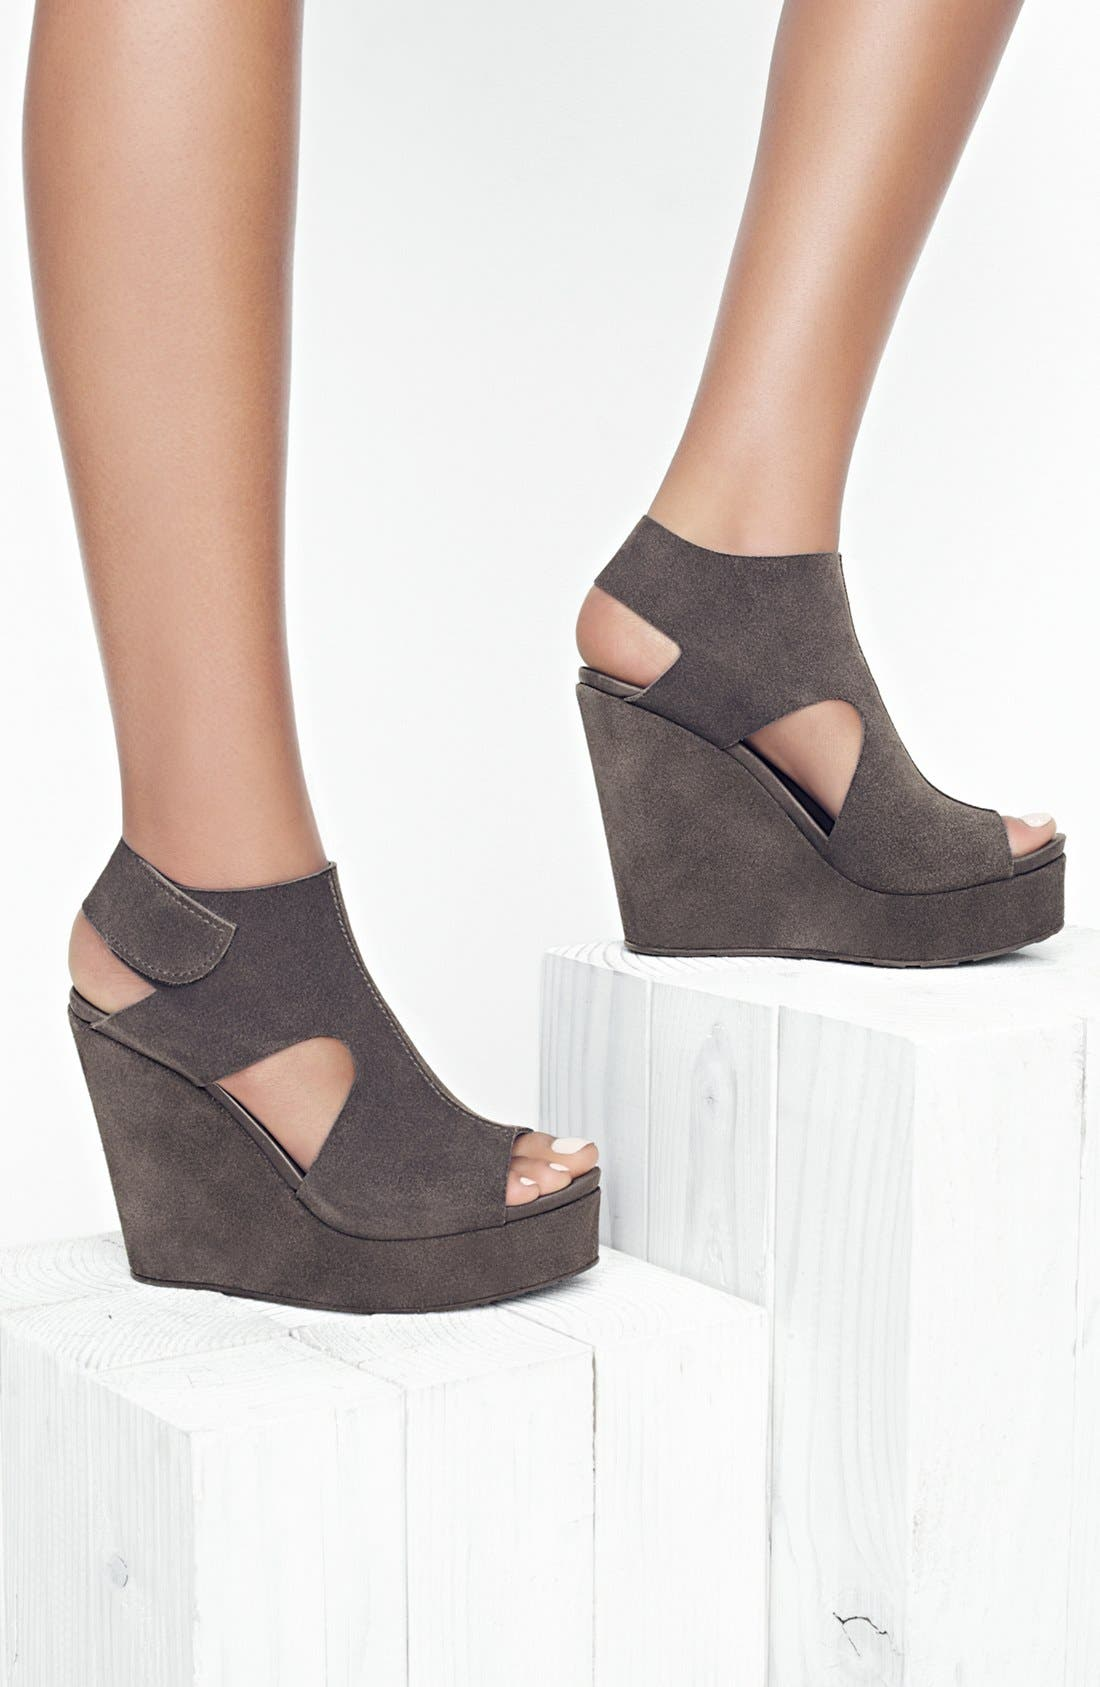 'Terence' Platform Wedge Sandal,                             Alternate thumbnail 5, color,                             020